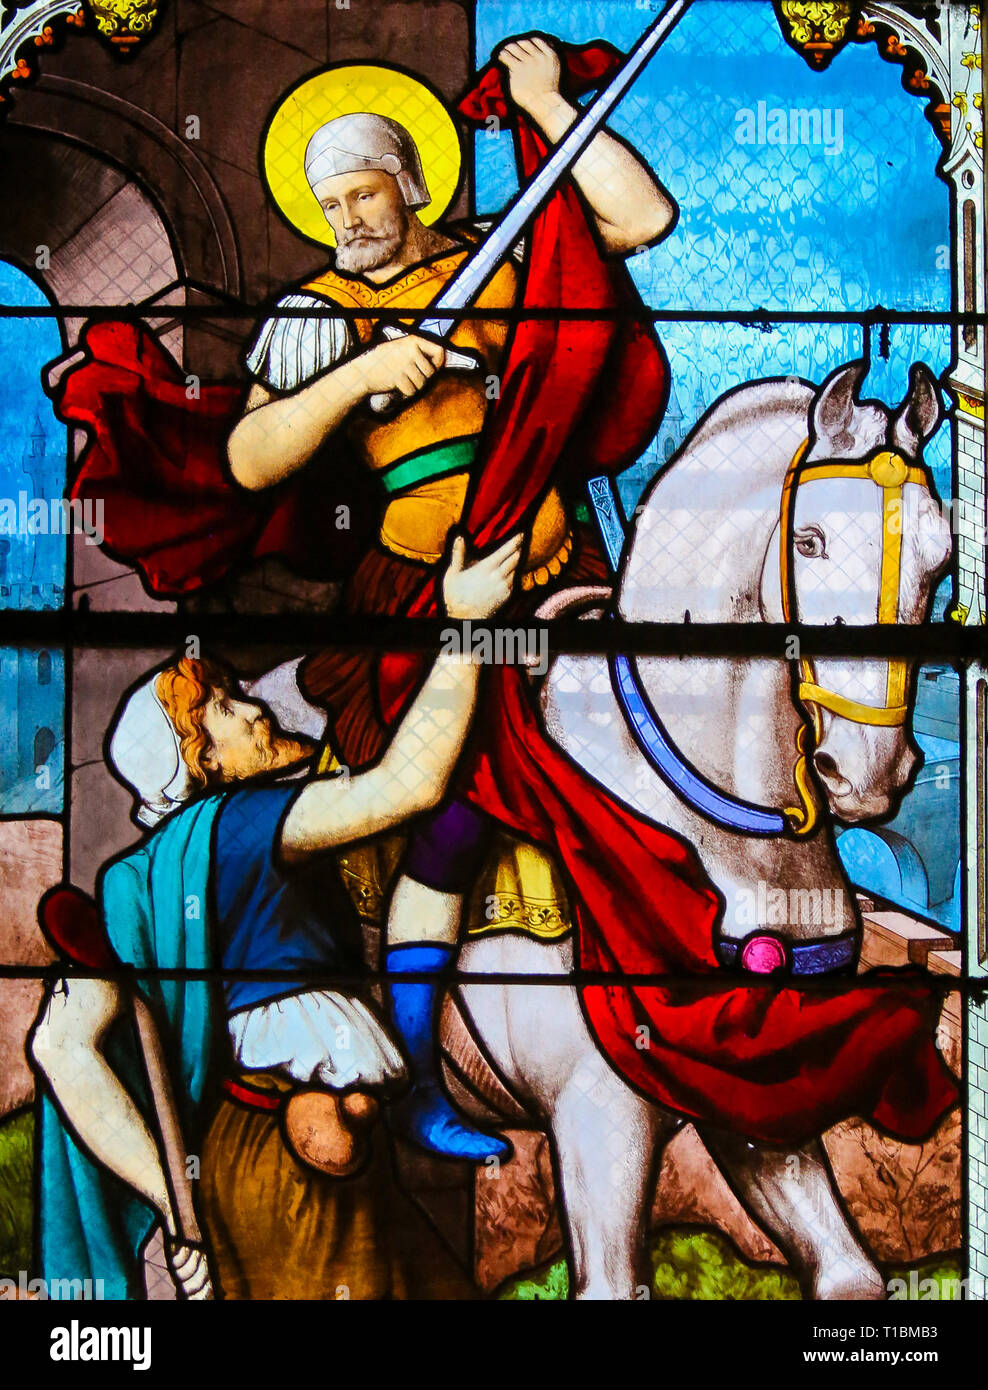 Stained Glass in the Church of Saint Severin, Latin Quarter, Paris, France, depicting St Martin of Tours handing out a piece of cloak to a beggar - Stock Image